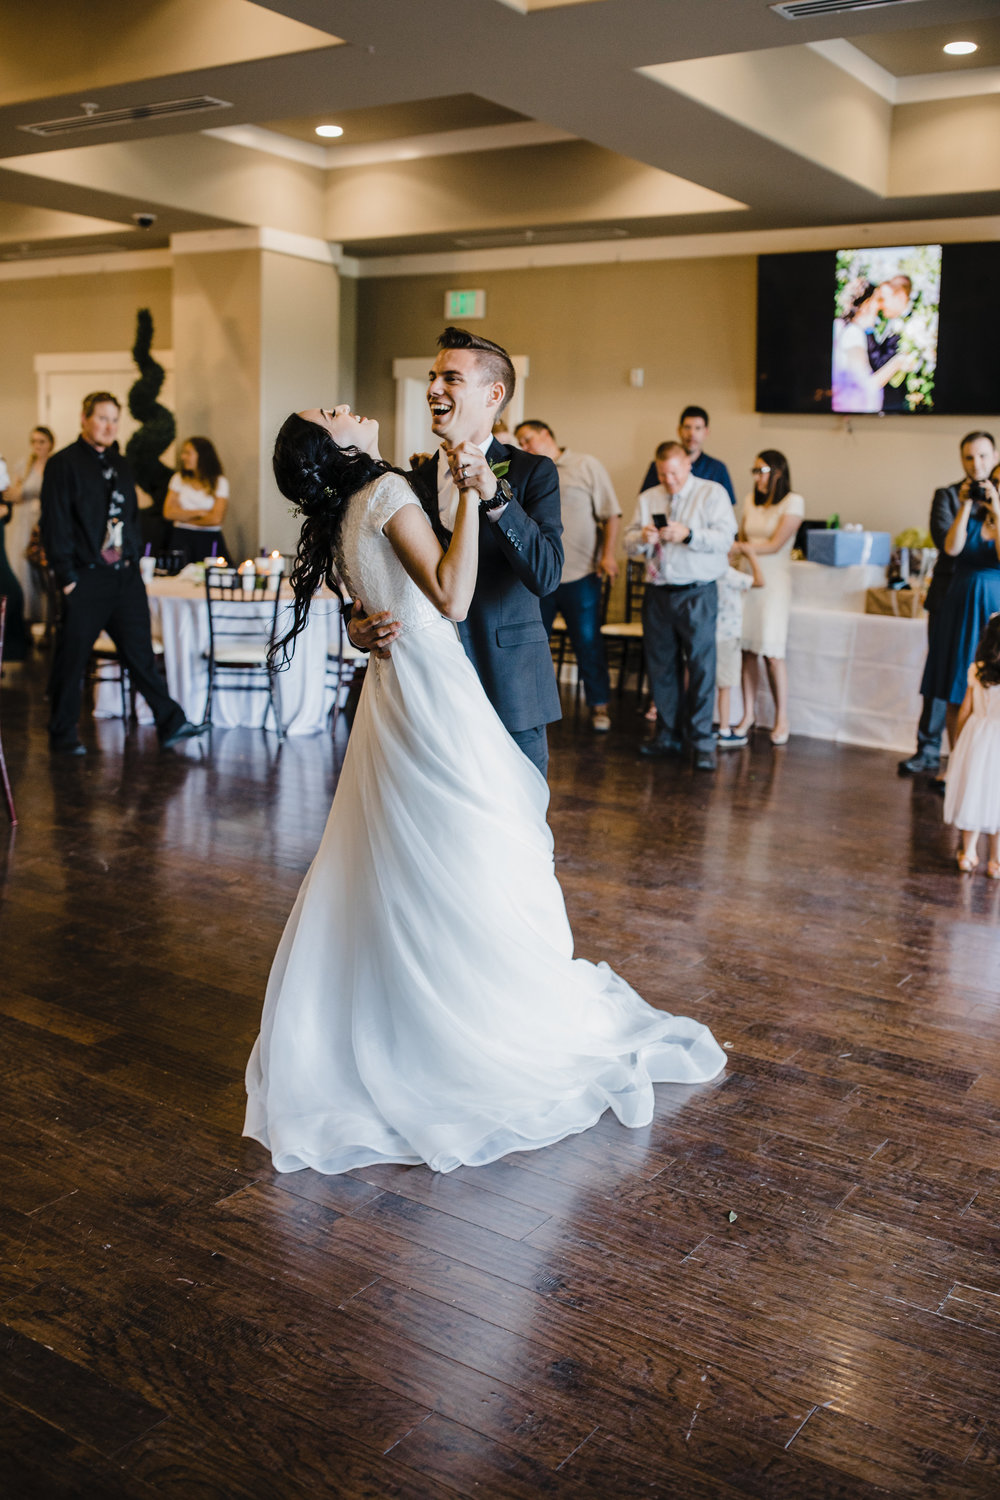 orem utah bride and groom first dance on wedding day wedding dance floor fun